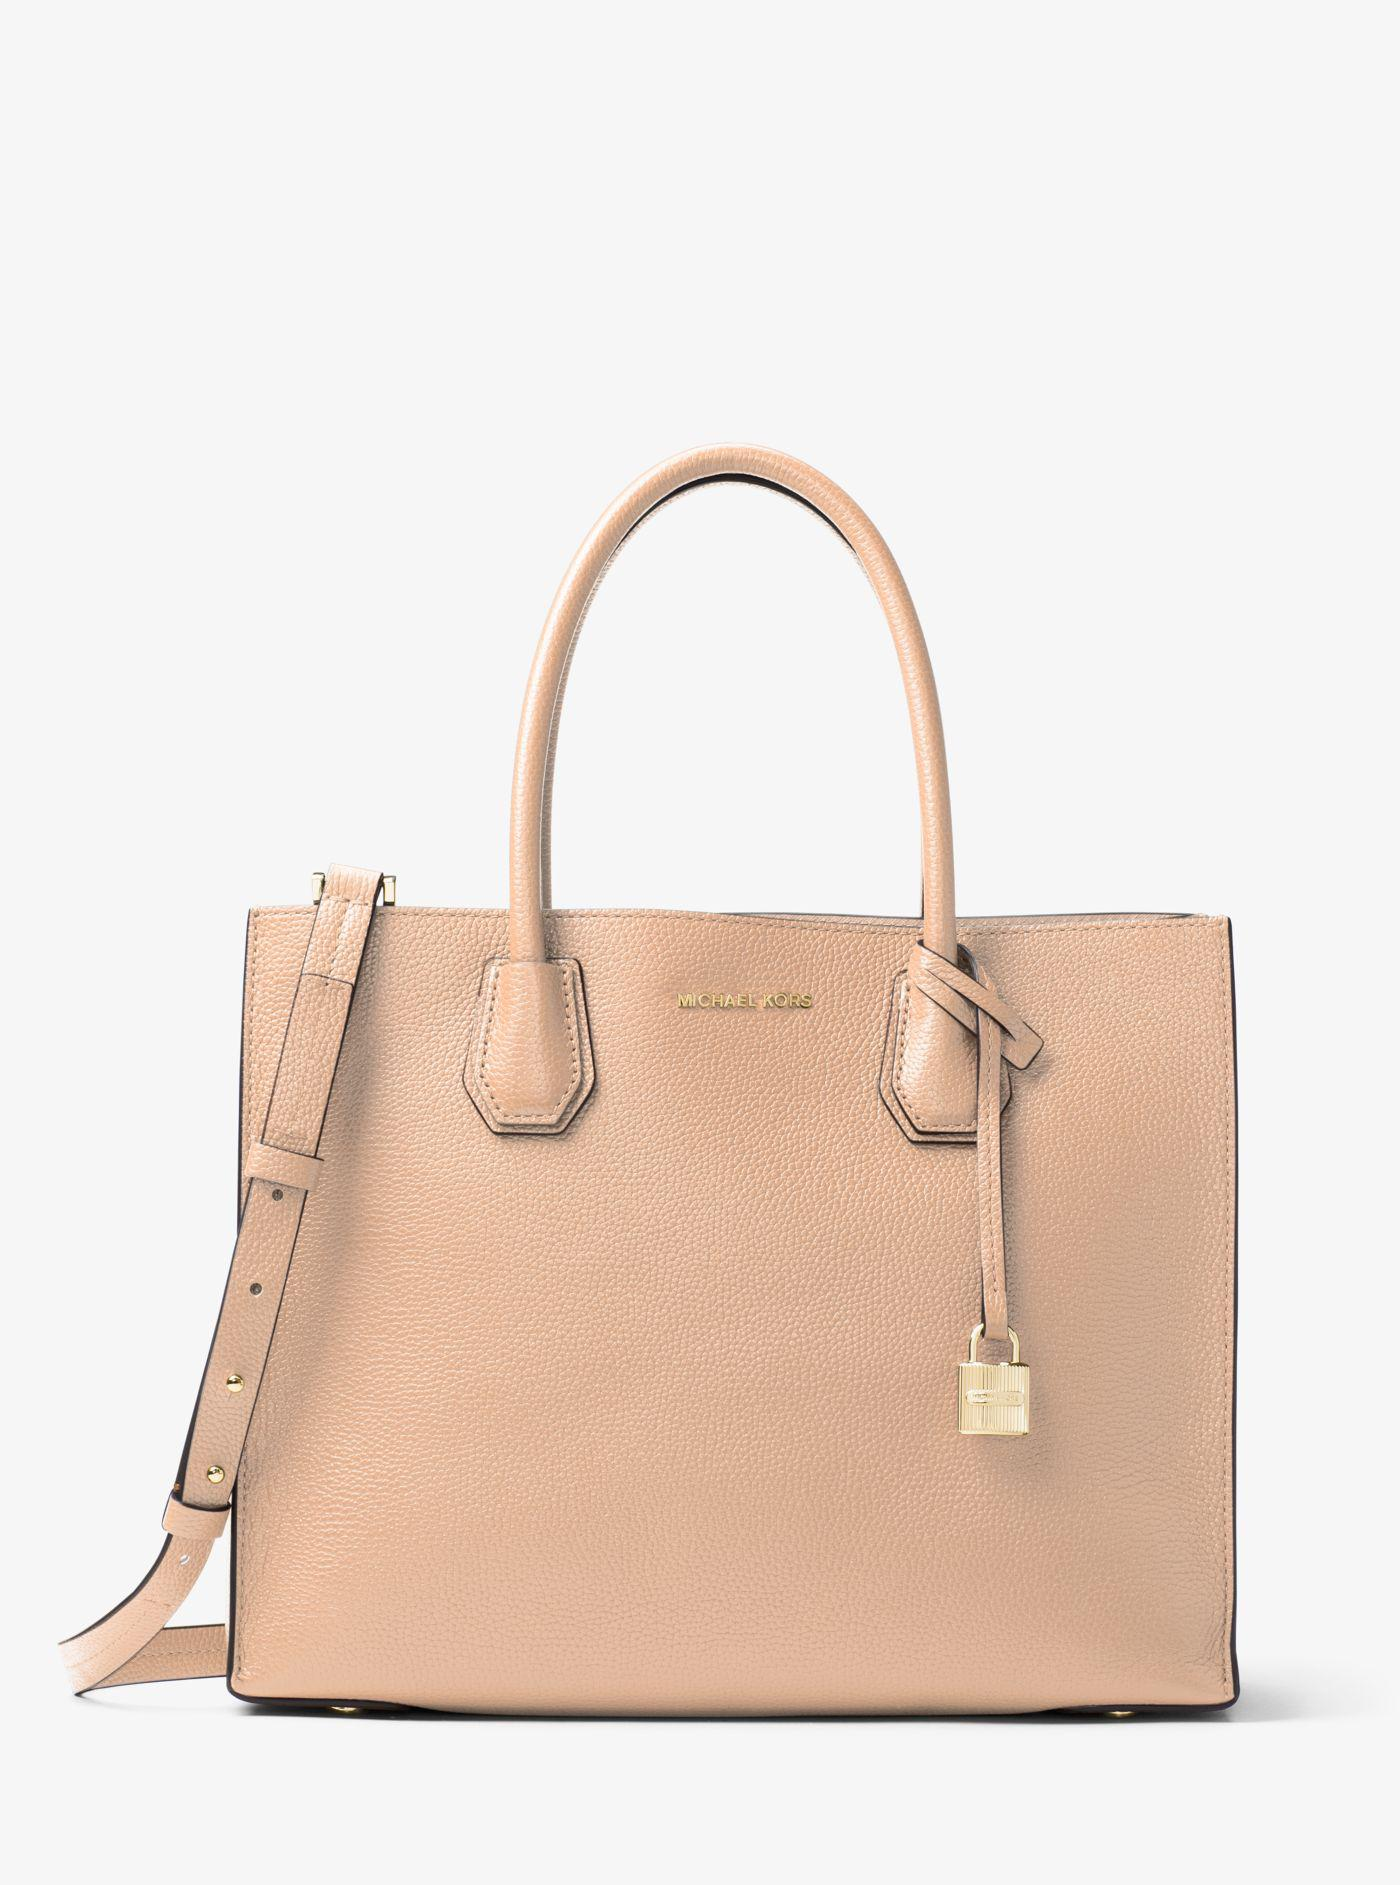 69a69986ff9f7 ... low price lyst michael kors mercer large leather tote in natural 39394  2de36 ...